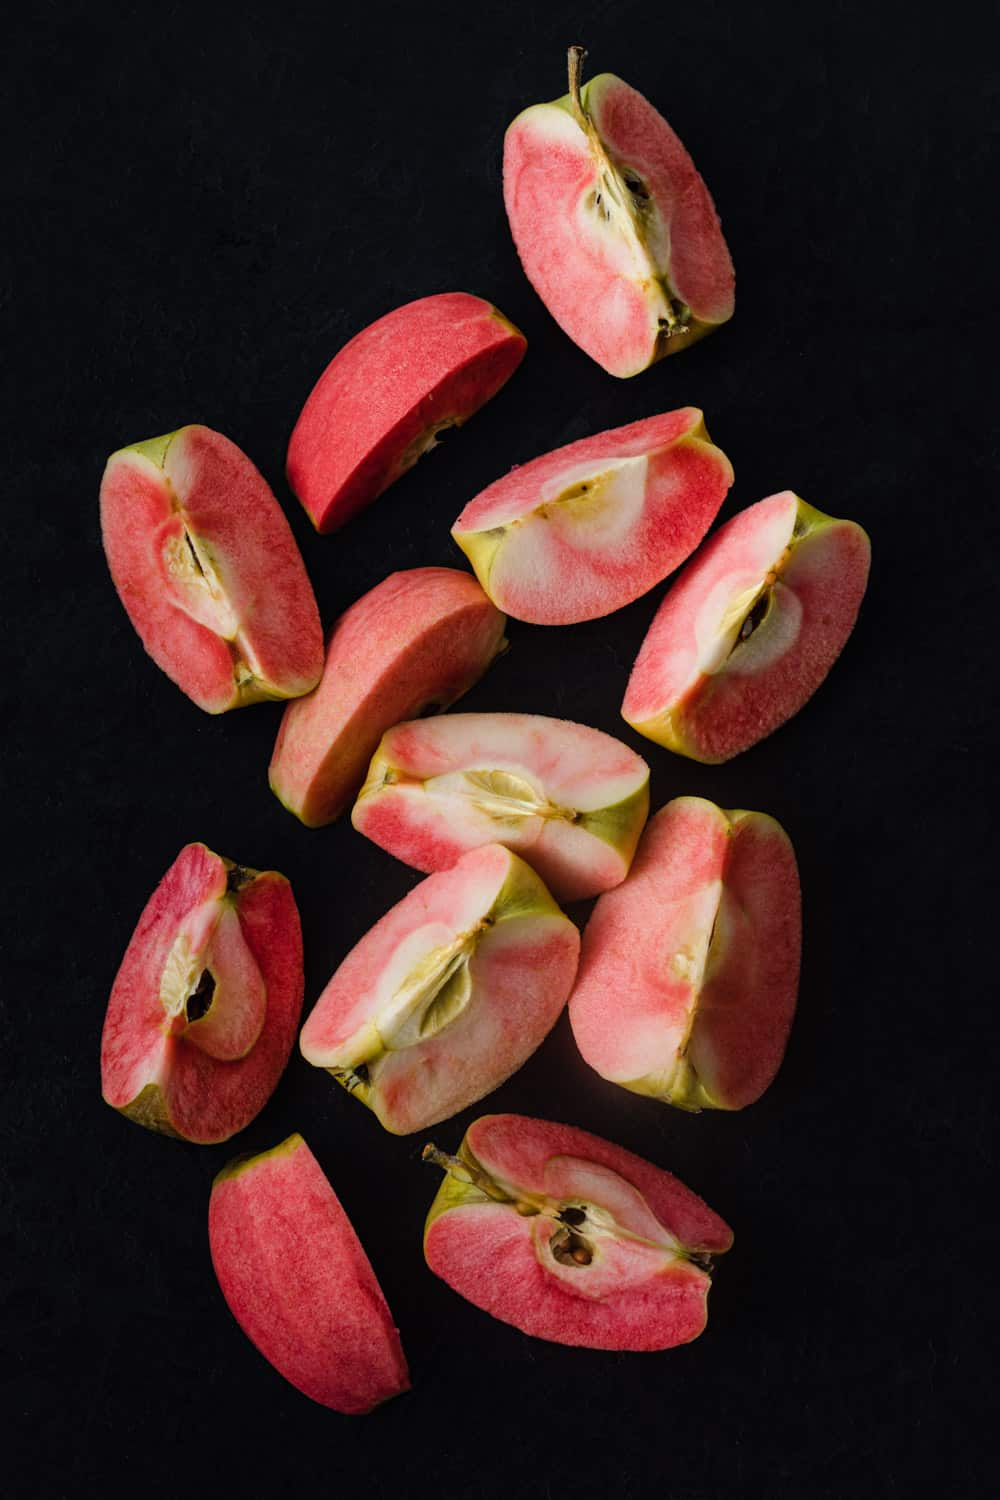 Pink Hidden Rose apples, cut into quarters, on a black background; overhead shot.